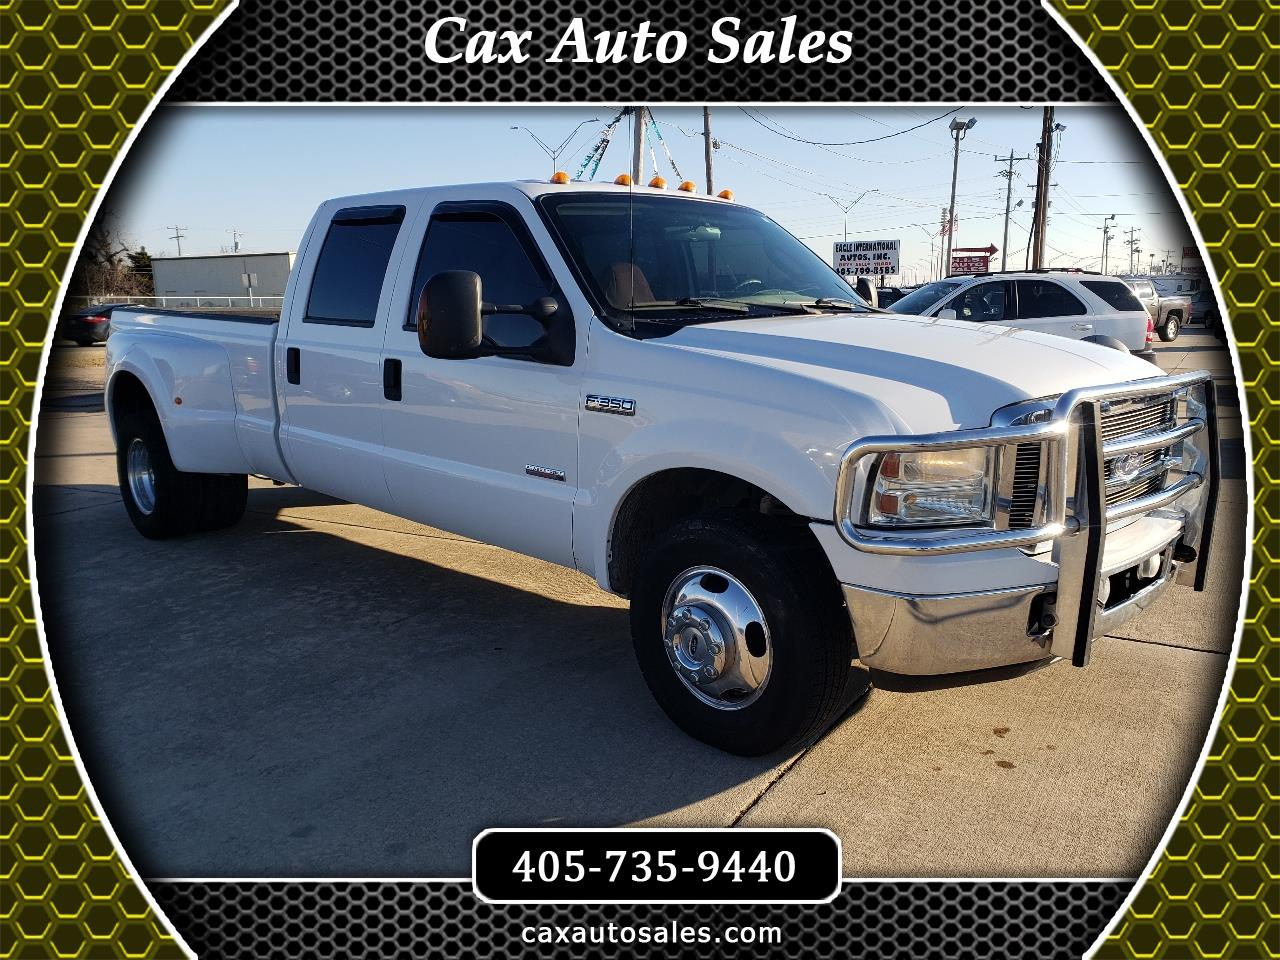 Ford F-350 SD XLT Crew Cab Long Bed 2WD DRW 2006